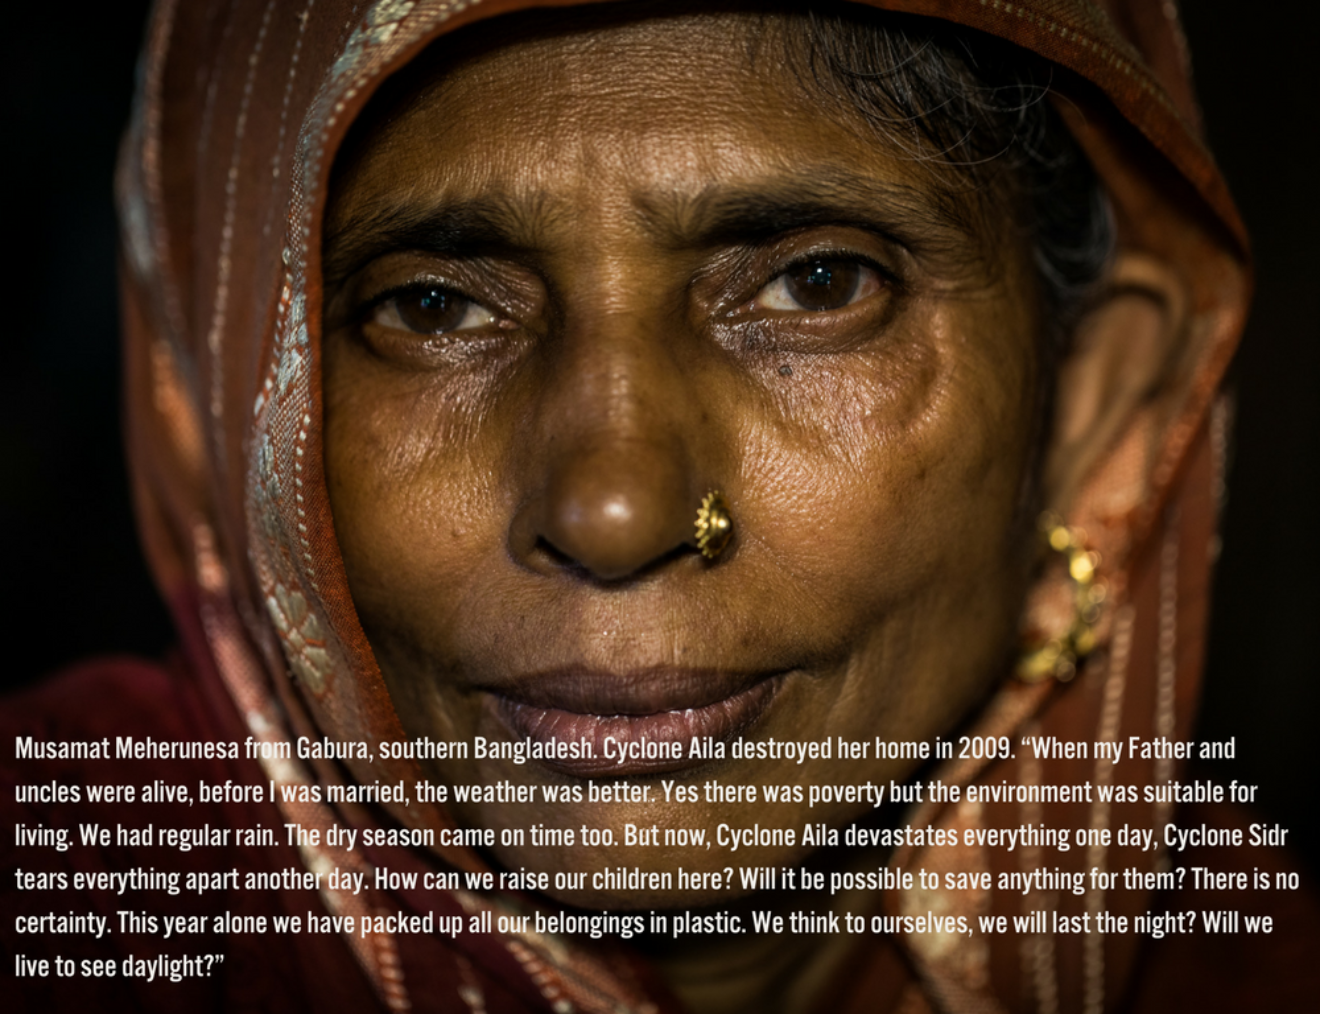 """Musamat Meherunesa From Gabura Southern Bangladesh  Cyclone Aila Destroyed Her Home In 2009 """" When My Father And Uncles Were Alive Before I Was Married The Weather Was Better  Yes There Was Poverty But The Environ"""